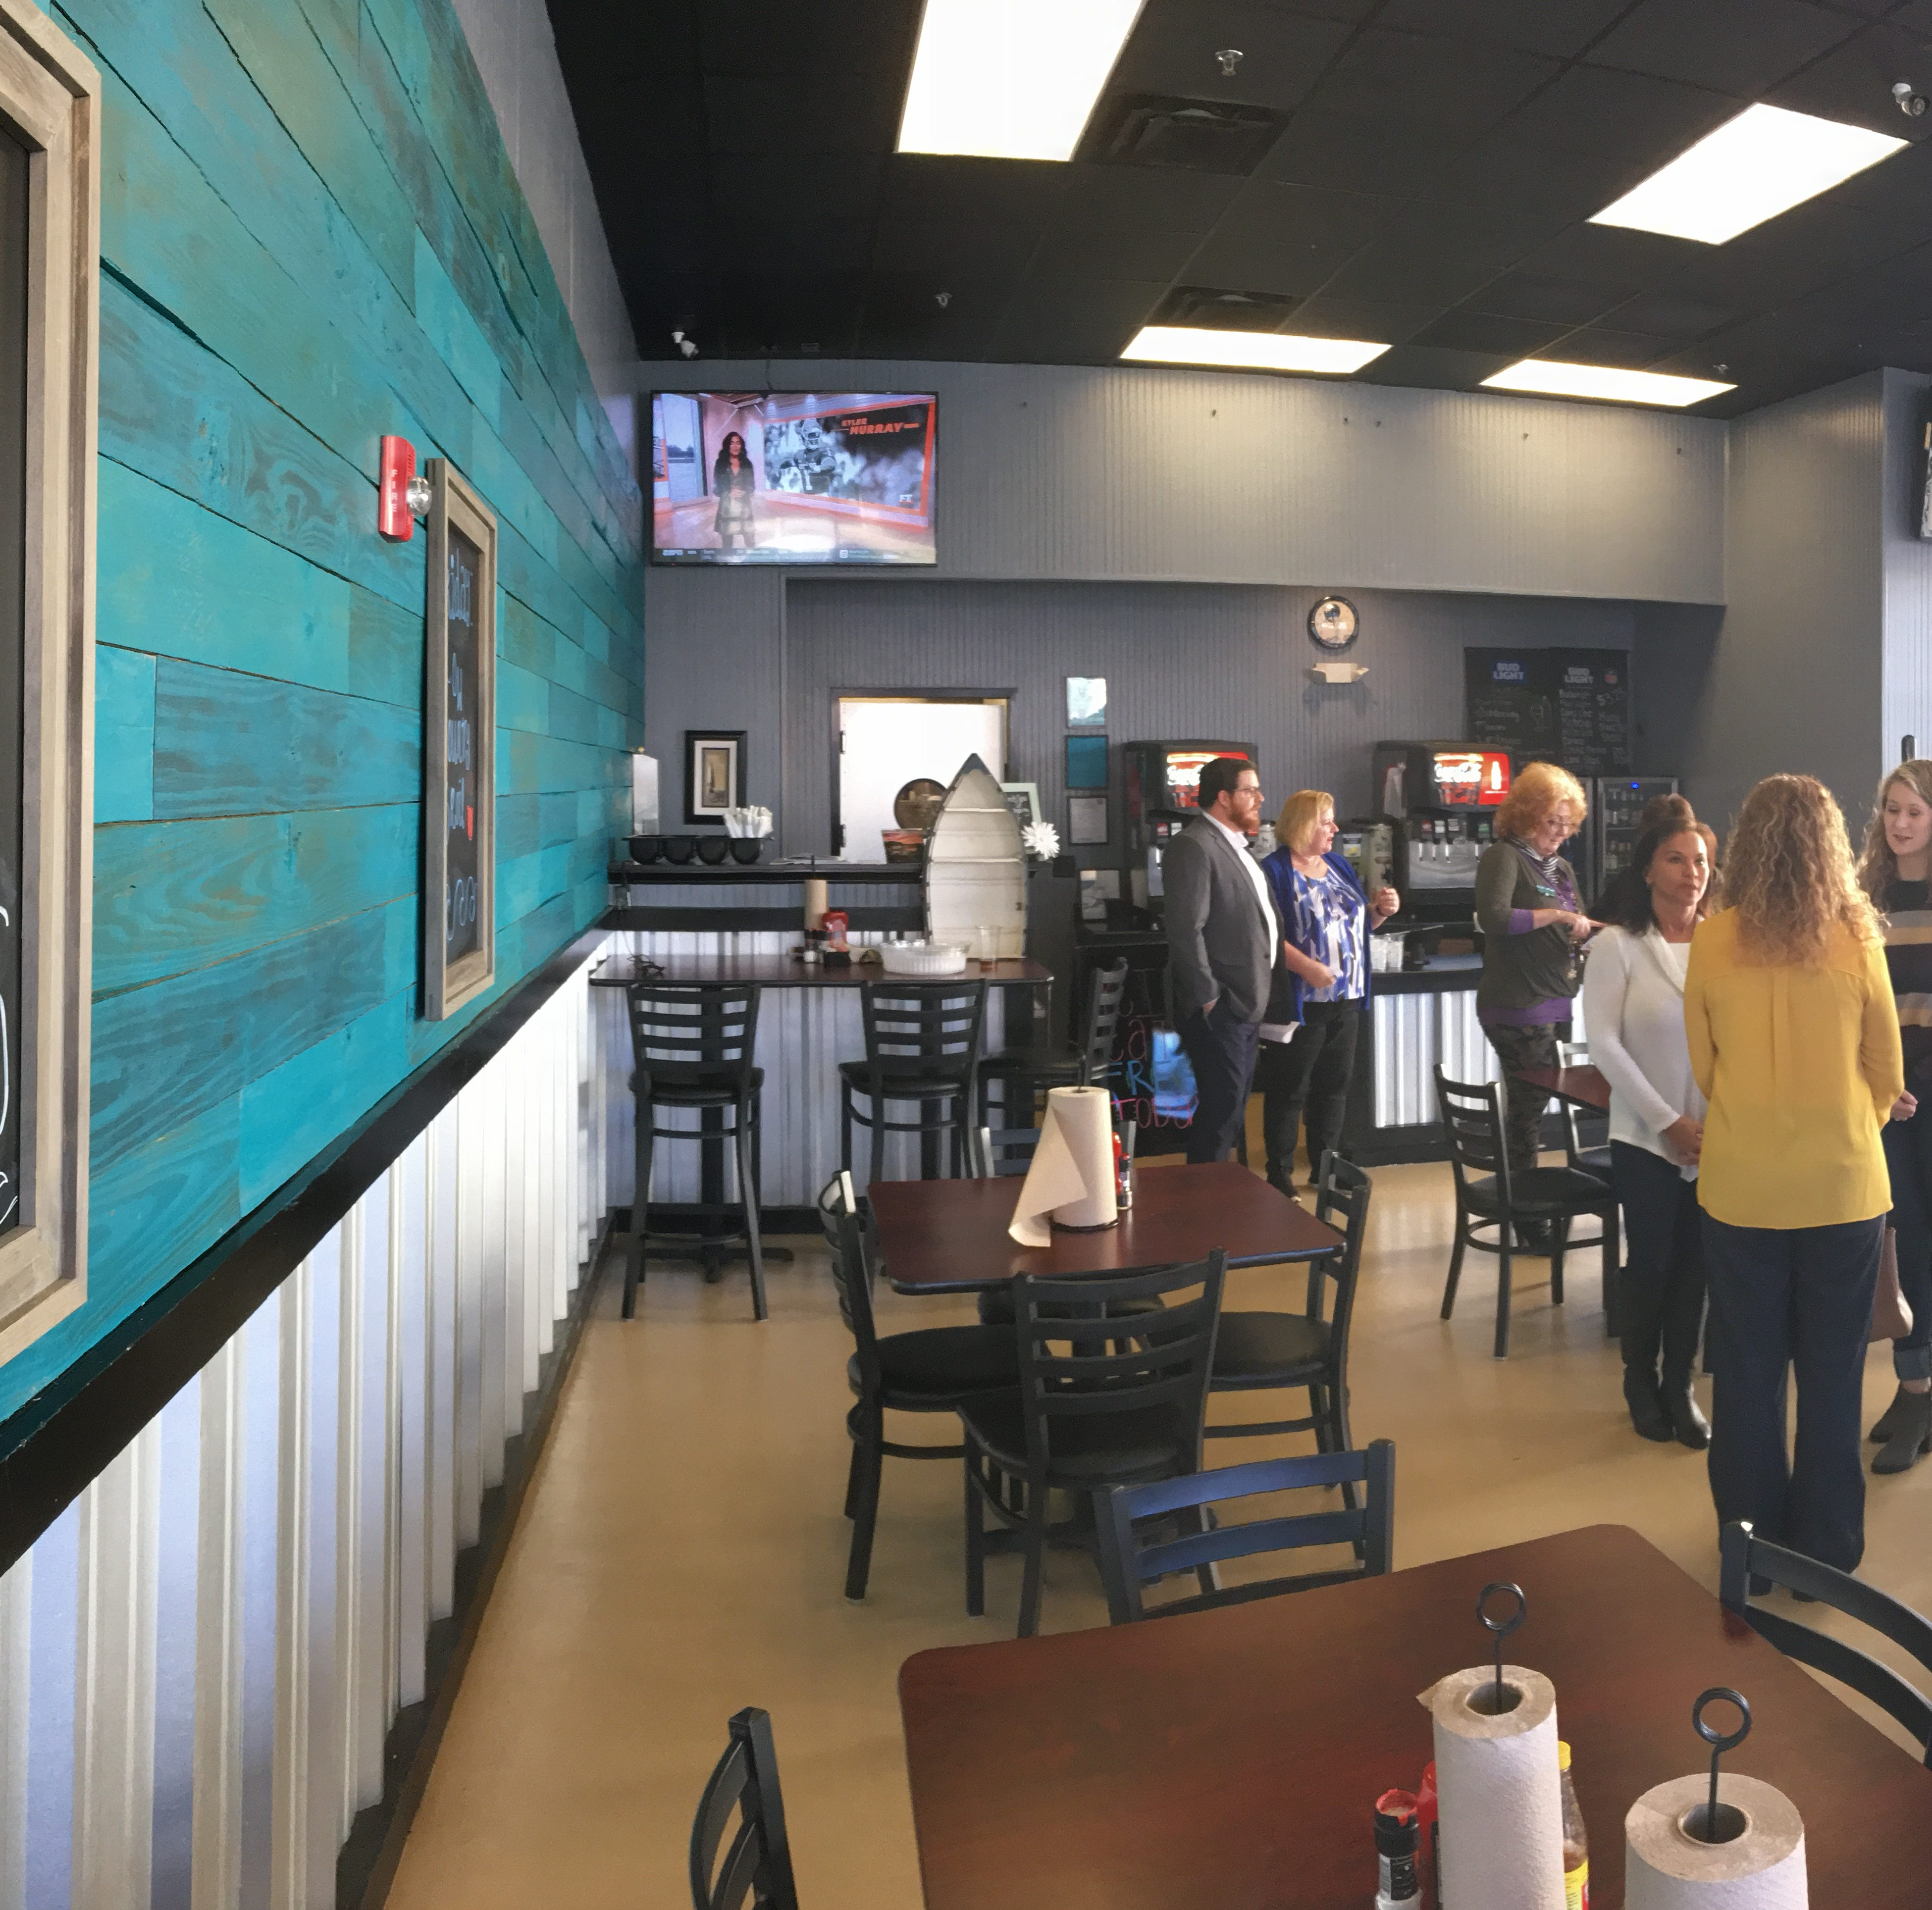 As Wharf Casual Seafood sets sail in Prattville, Mahi Mike's comes ashore